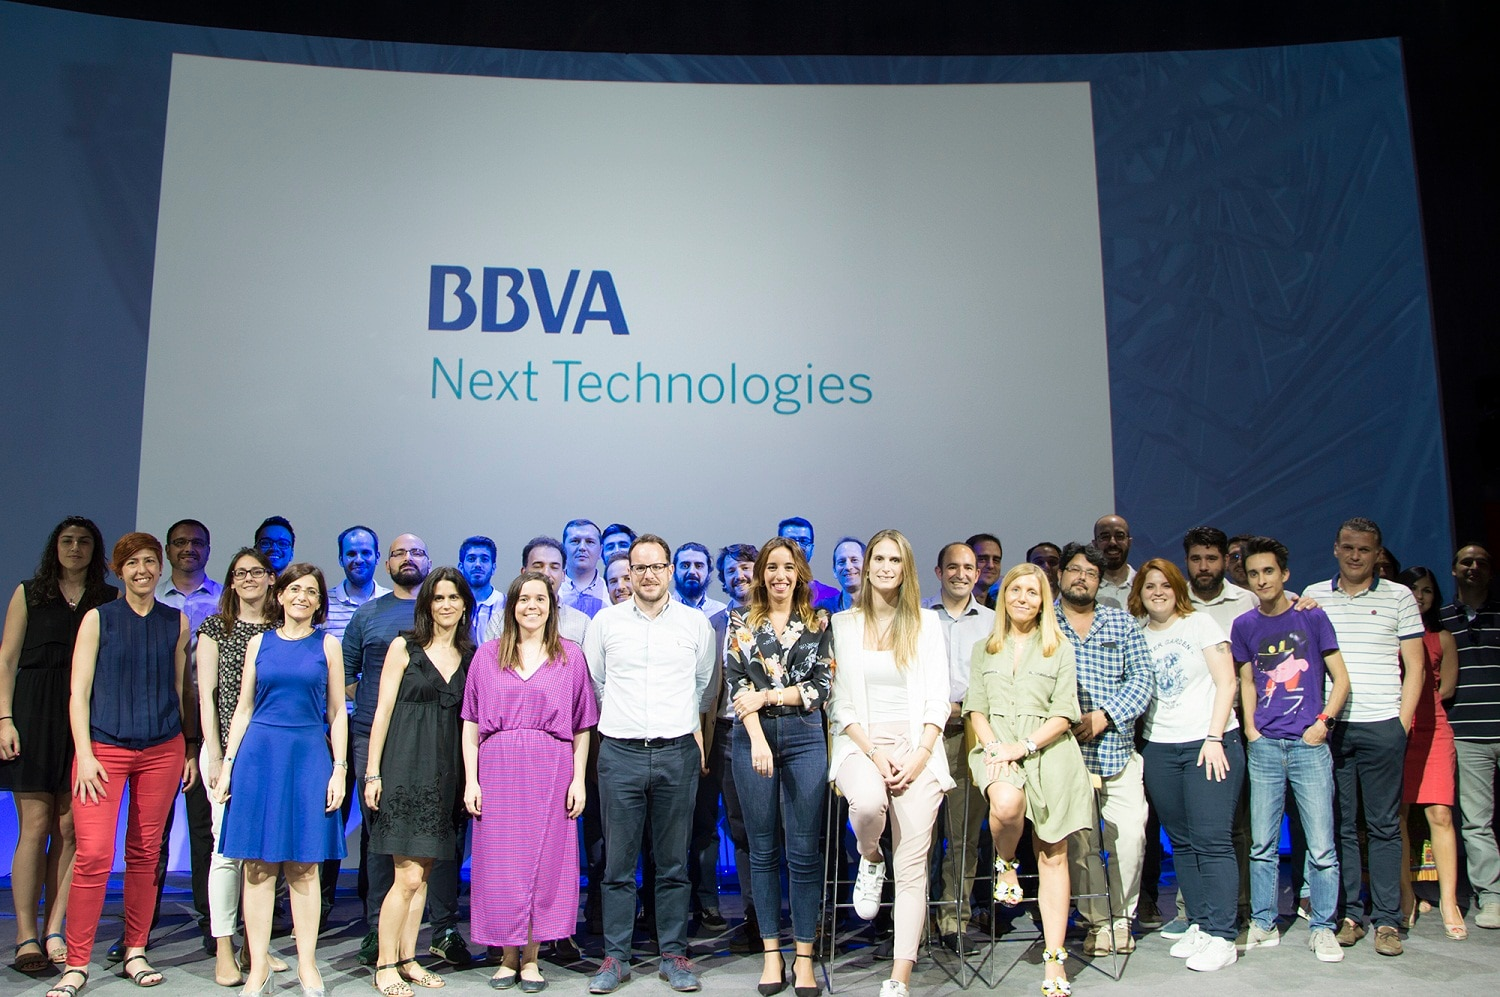 BBVA-Next-Technologies launch innovation workers recurso bbva